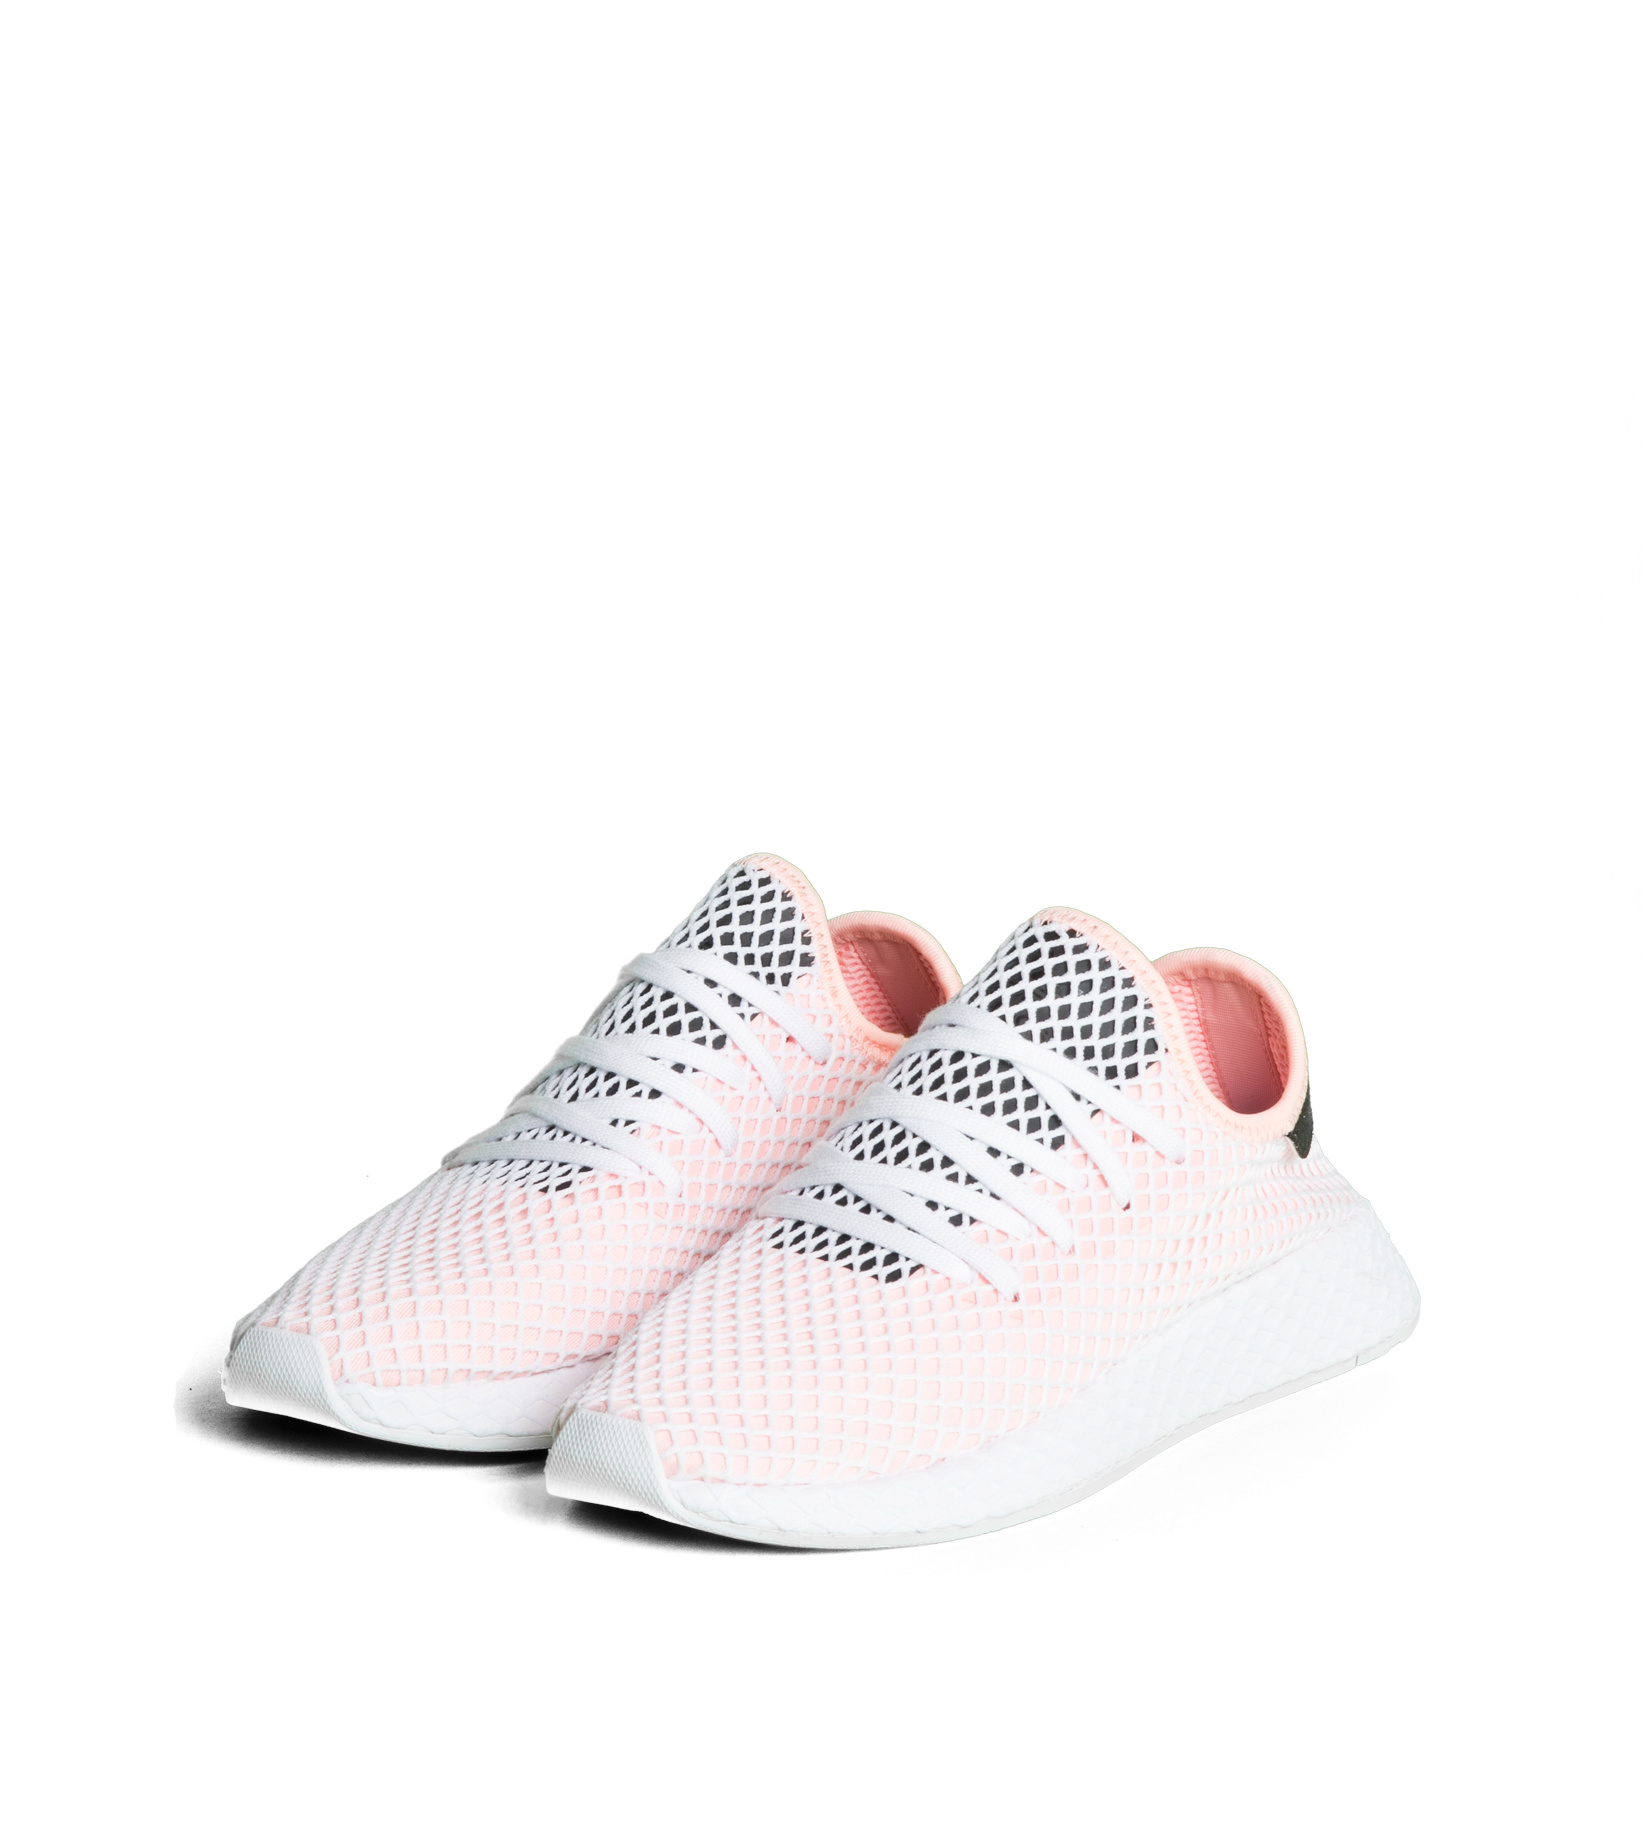 "Deerupt Runner ""White/Black""-1"